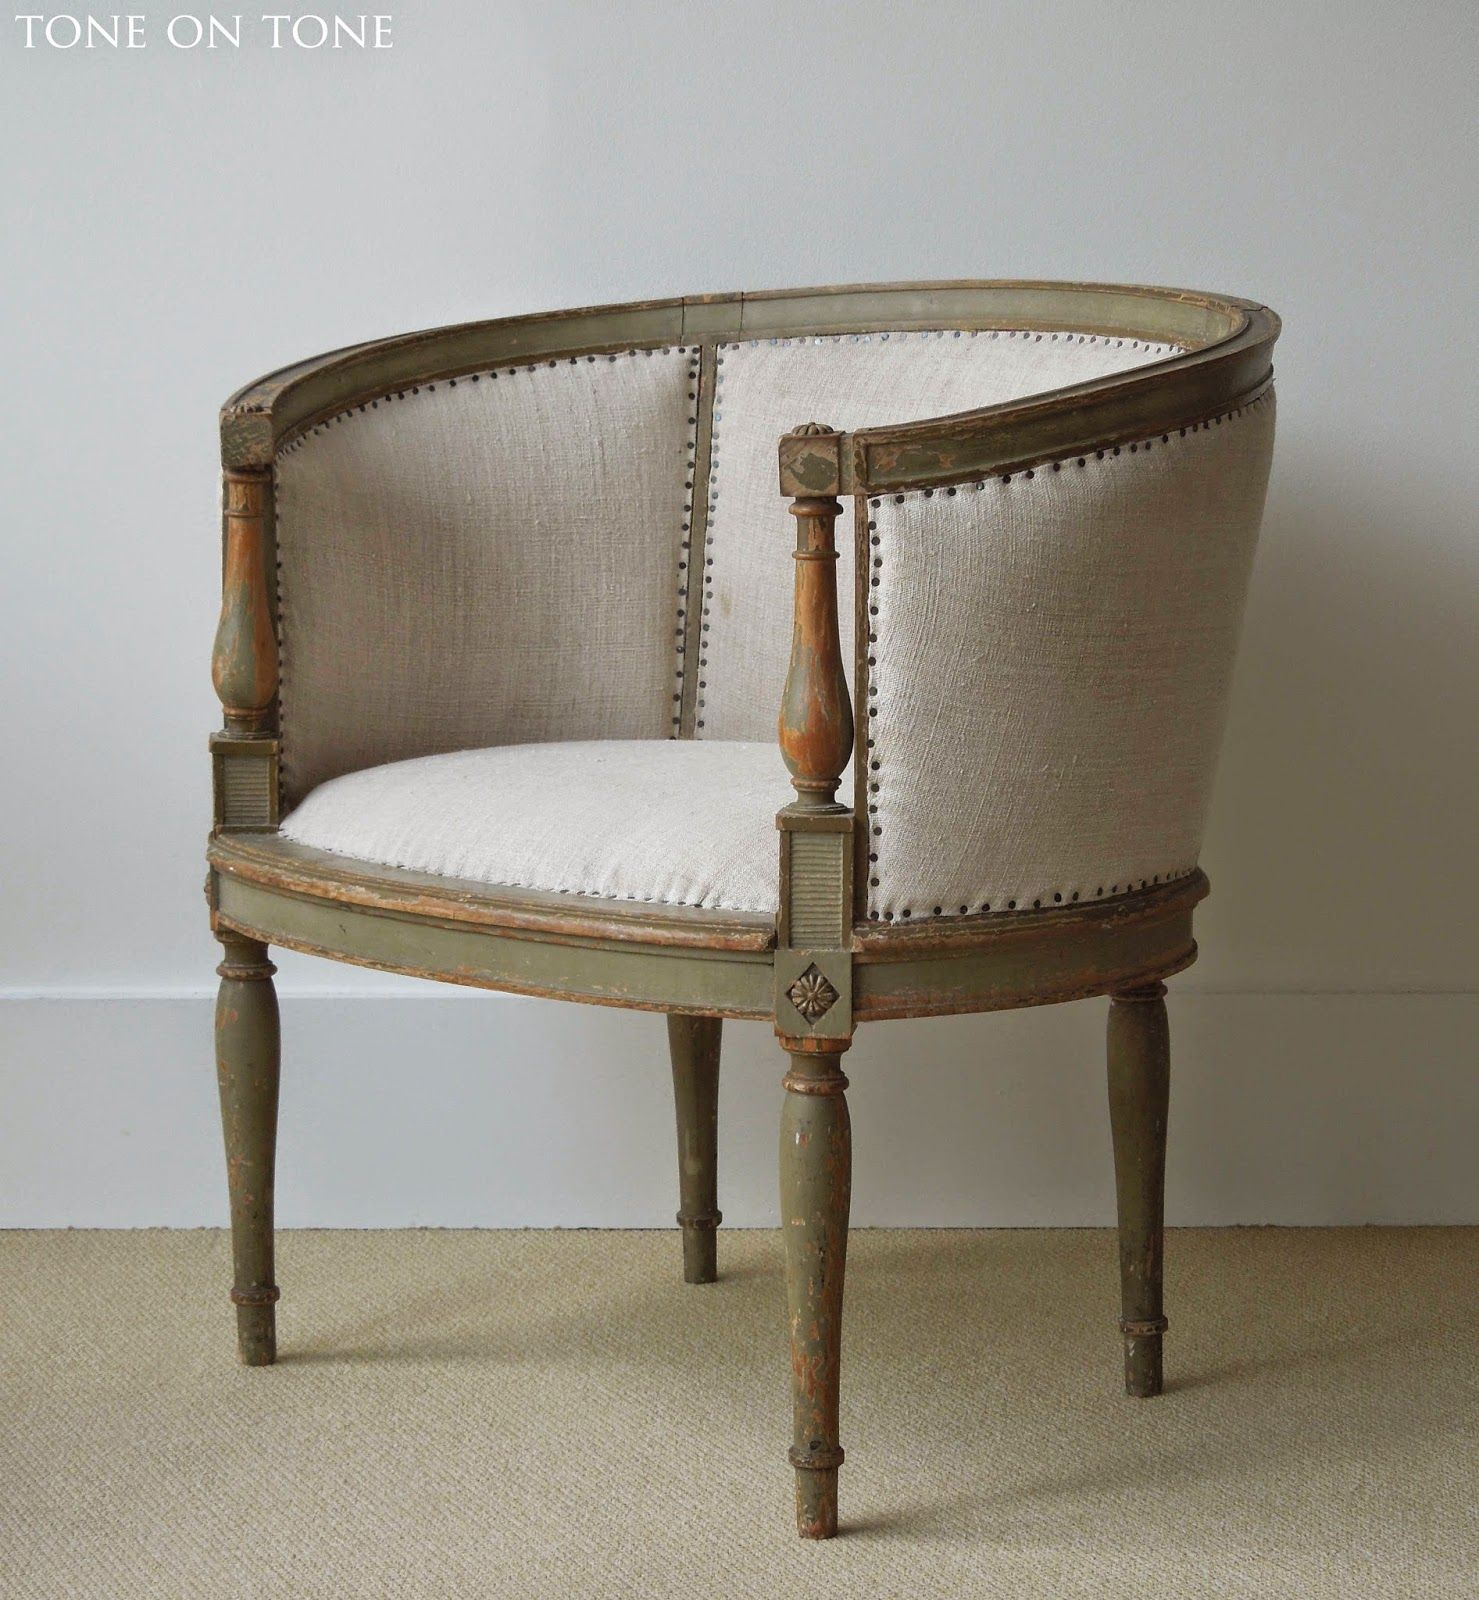 Tone on Tone: New Shipment Preview - Tone On Tone: New Shipment Preview Chairs Pinterest Antique